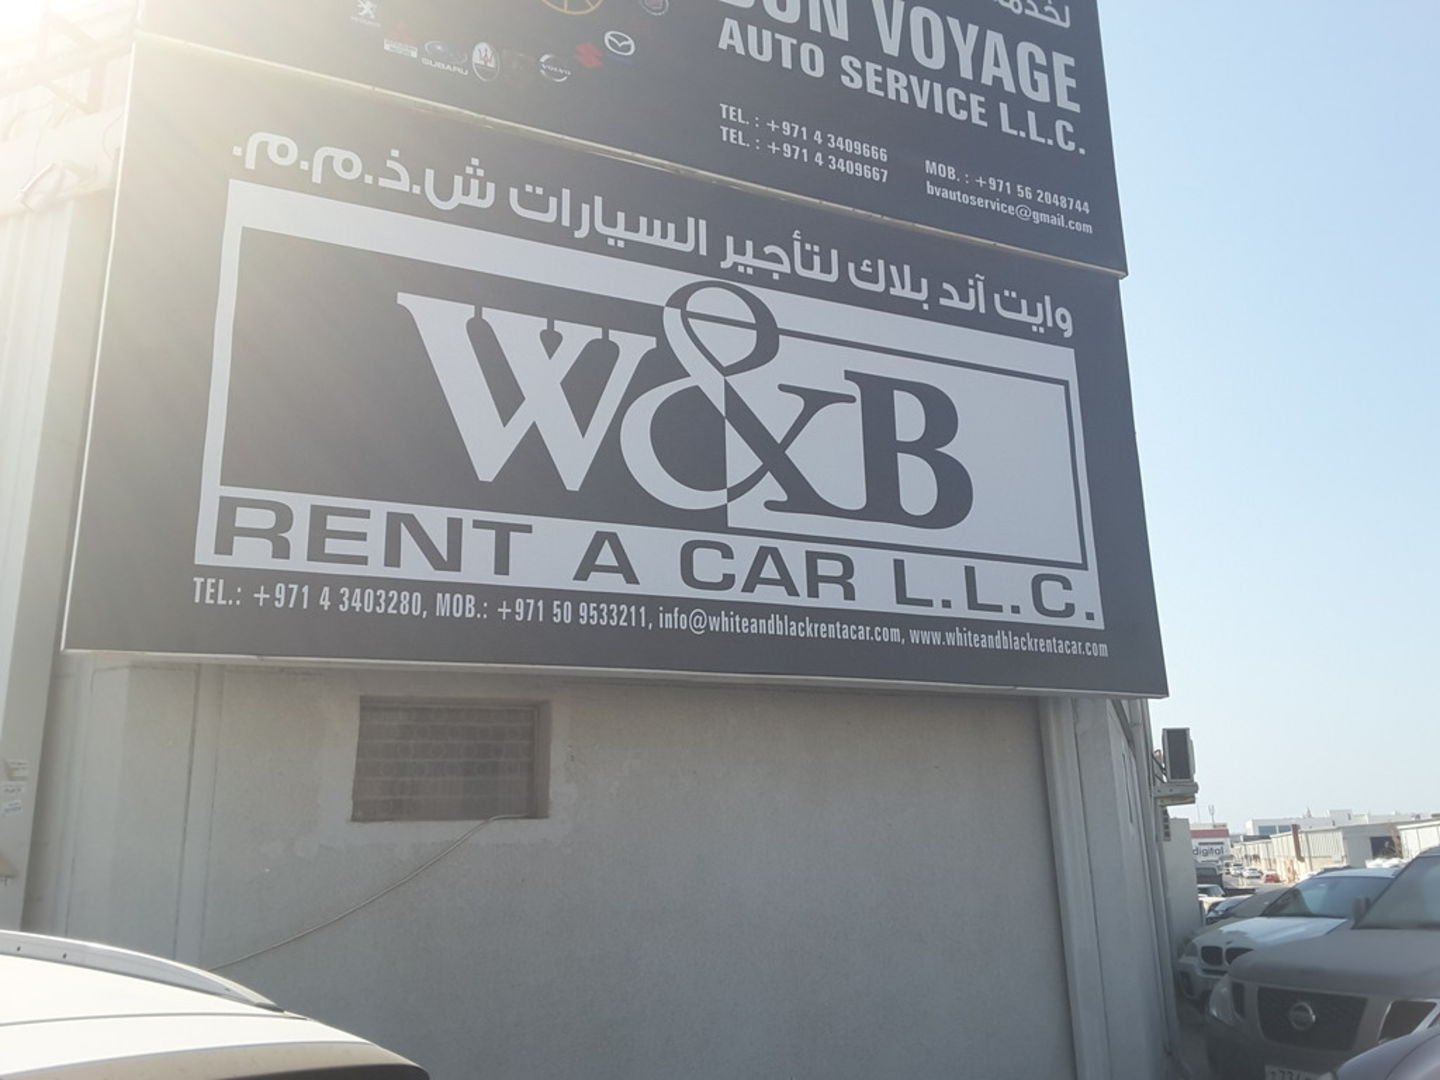 HiDubai-business-white-black-rent-a-car-transport-vehicle-services-car-rental-services-al-quoz-industrial-3-dubai-2